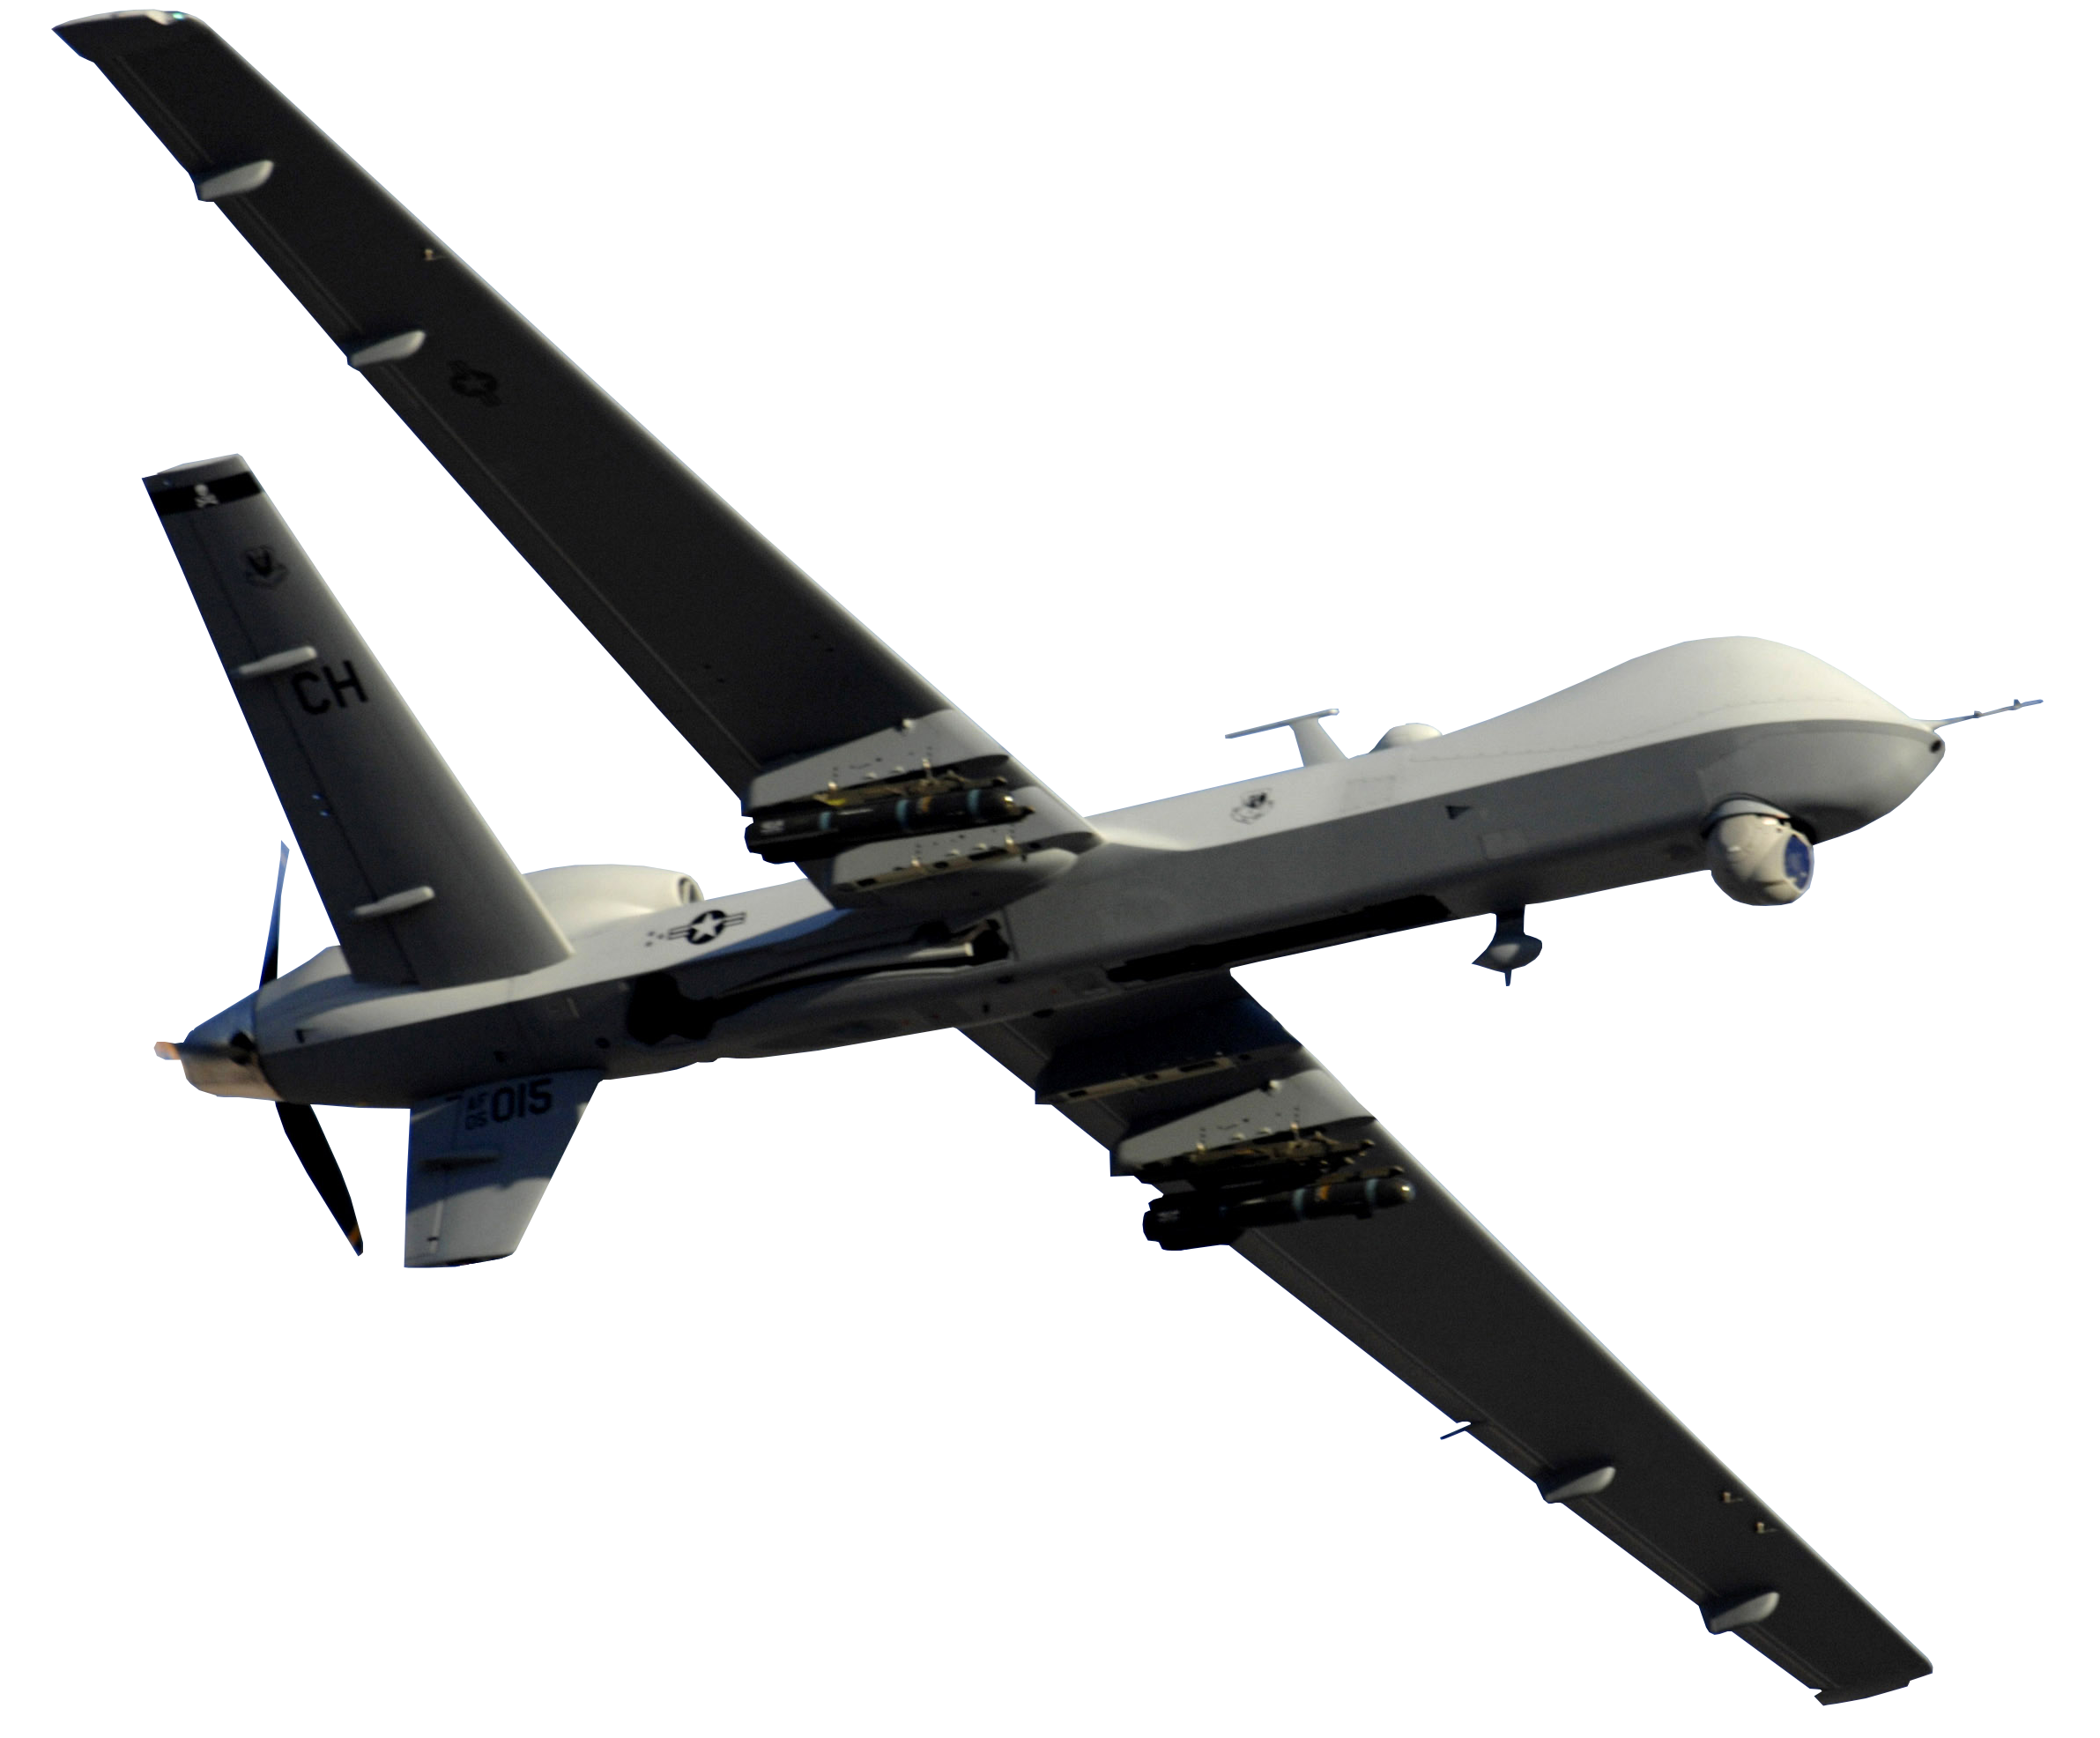 Stare Aerial Gorgon Atomics Predator Mq-9 Unmanned PNG Image